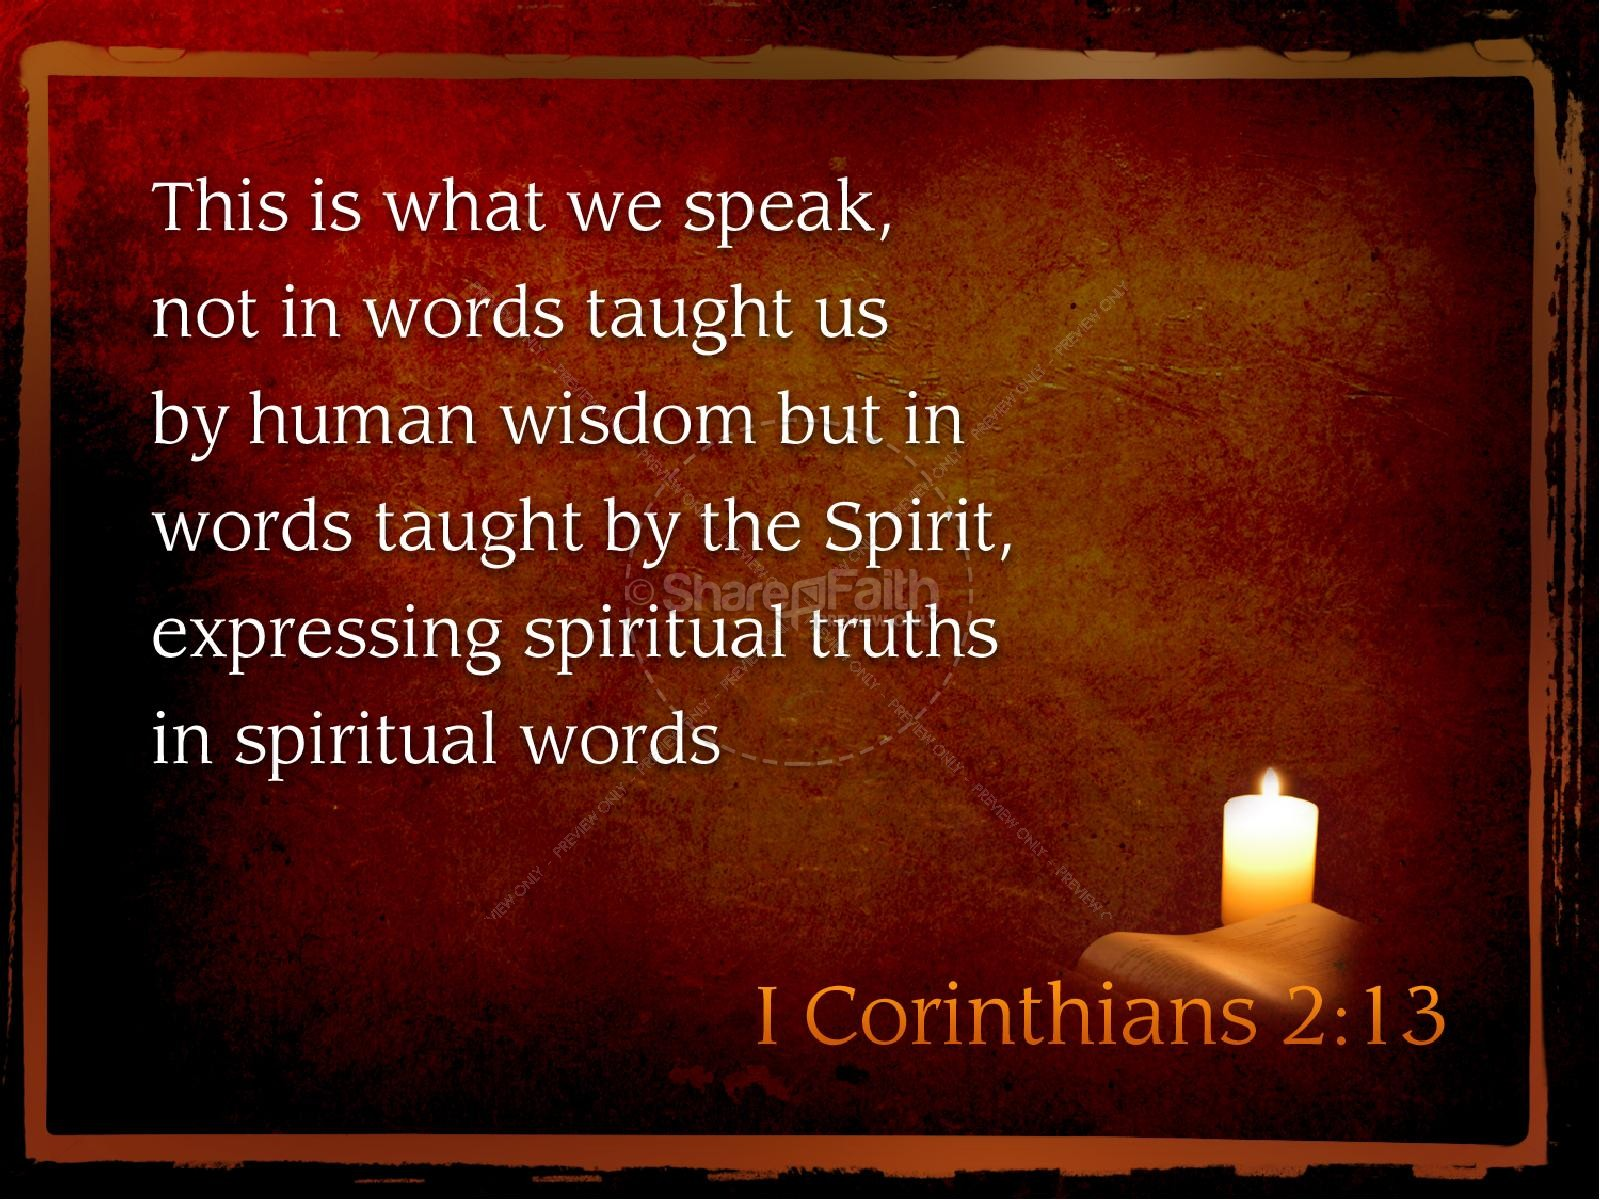 Spirit of Truth PowerPoint Template for Pentecost